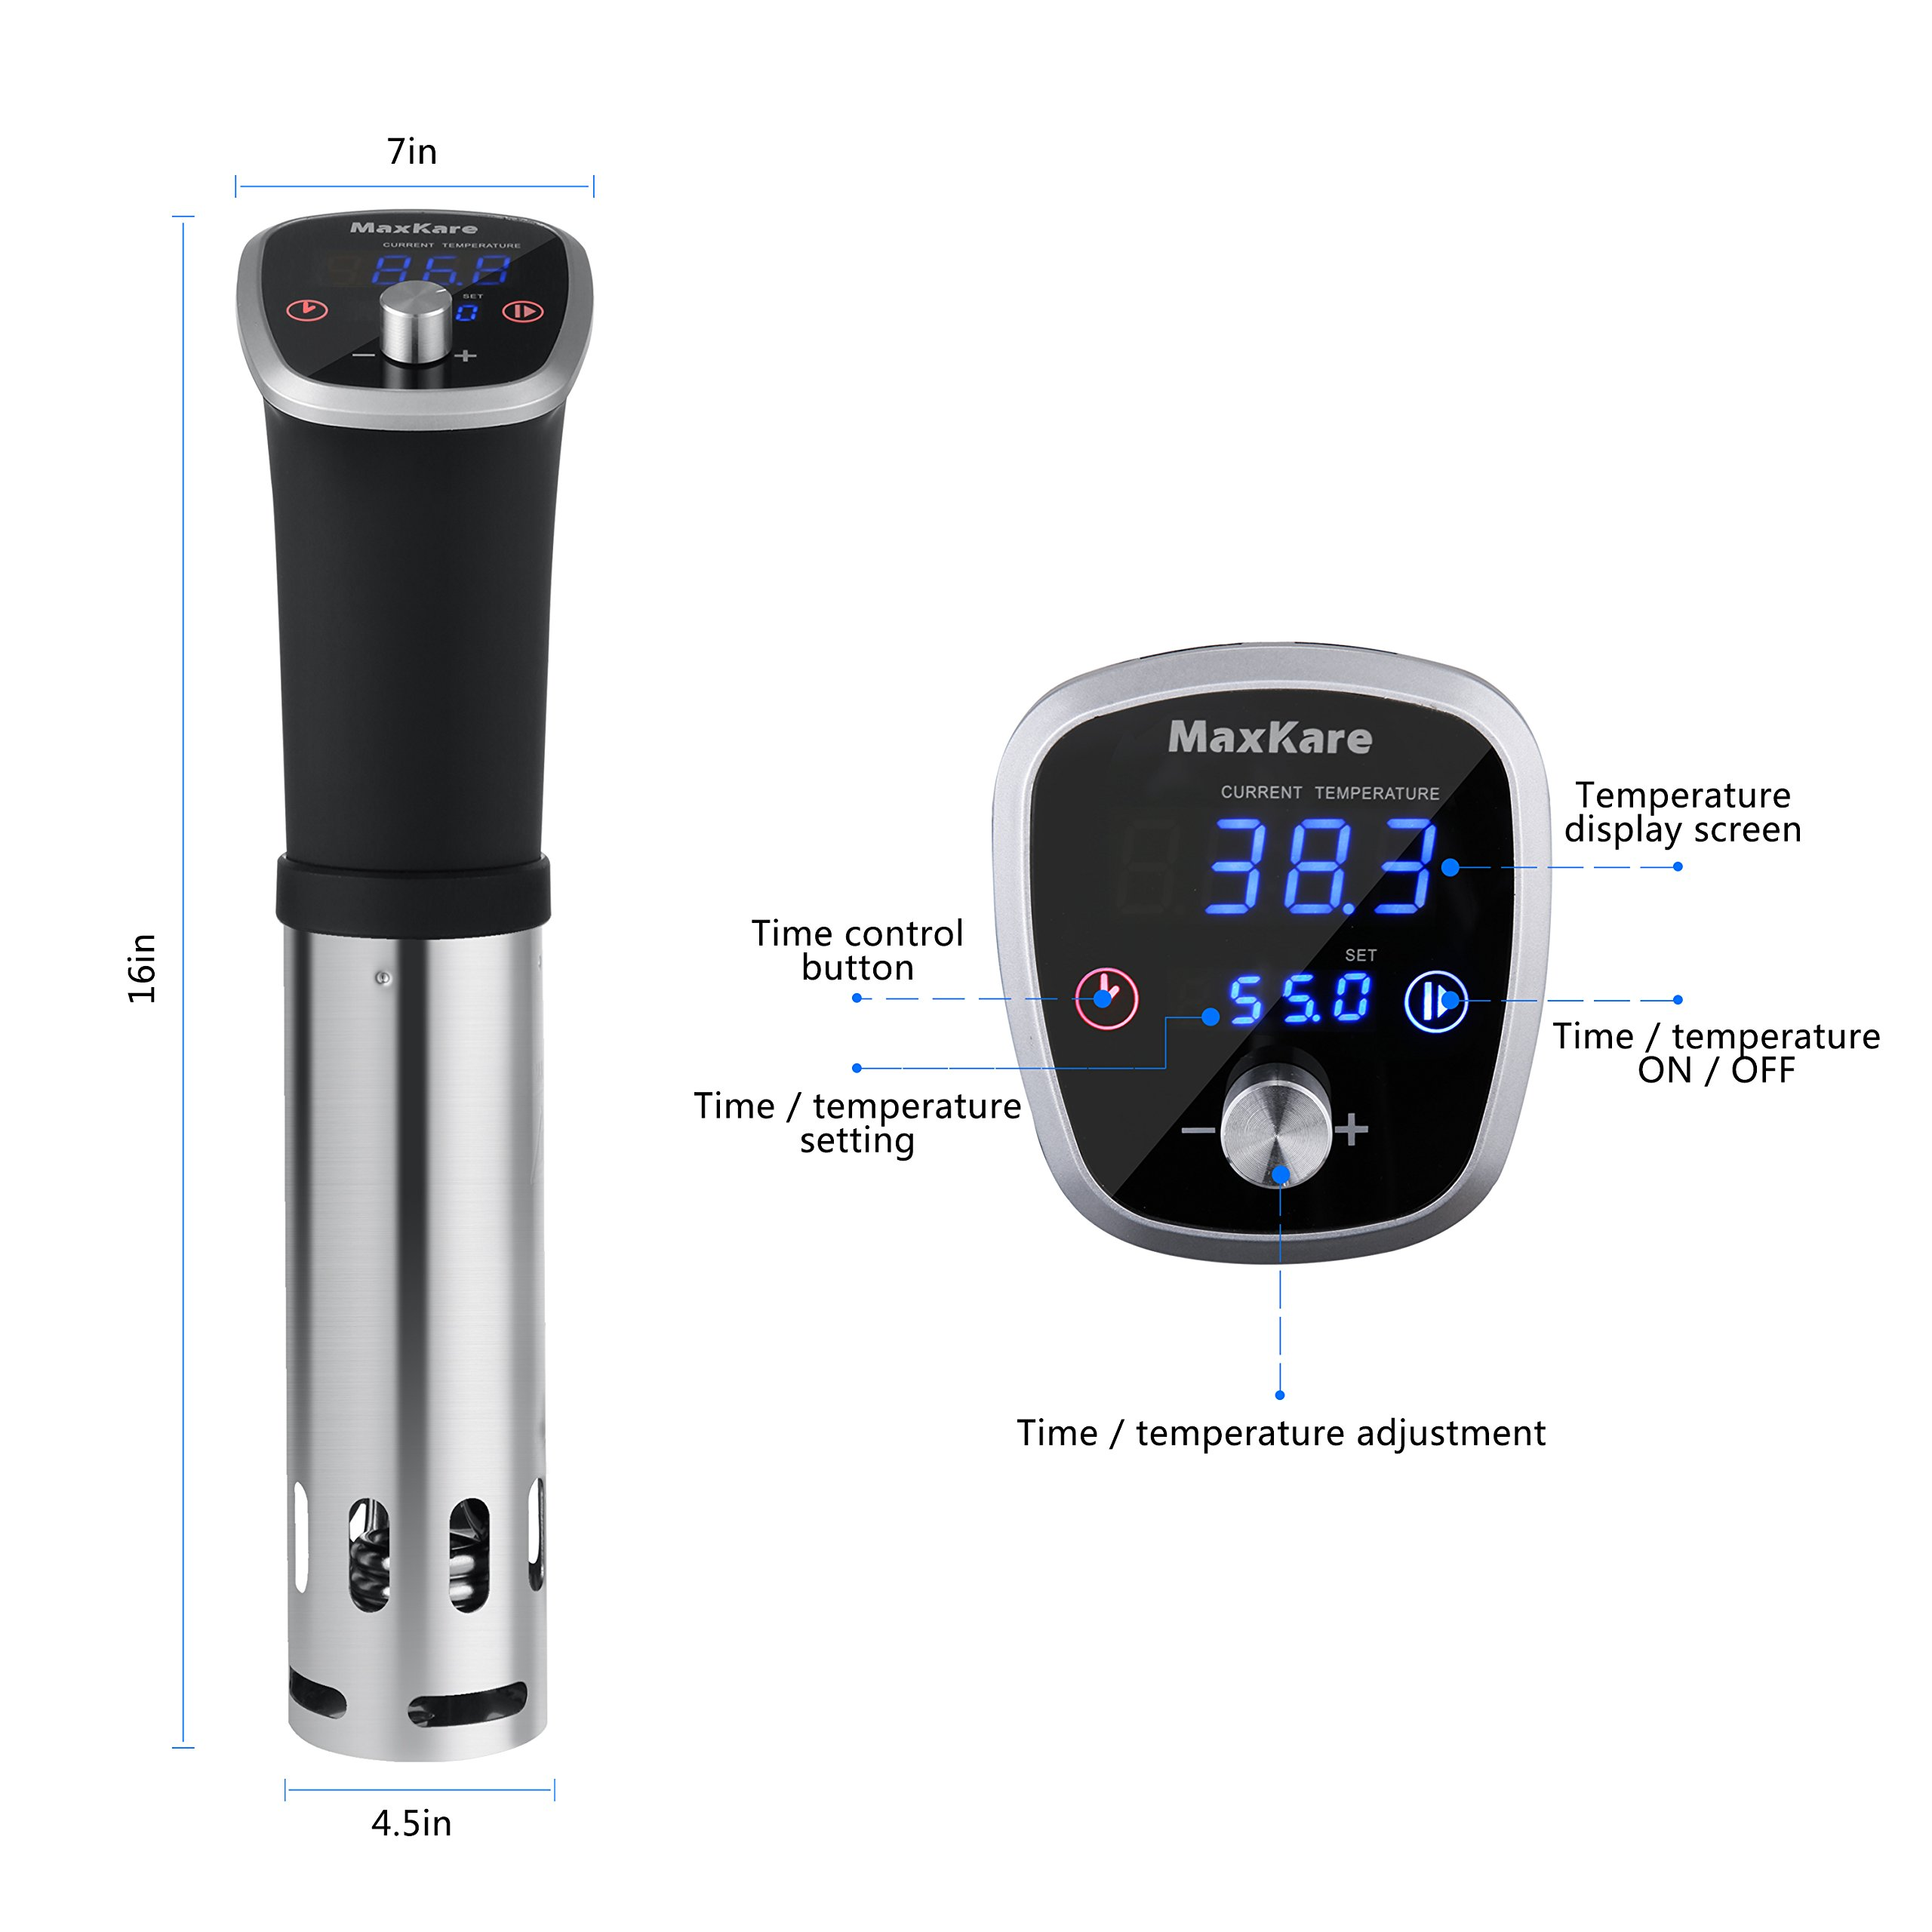 MaxKare Sous Vide Precision Cooker with Immersion Circulator, Double Digital Display Screens, Stainless Steel, Precise Temperature/Time Control for Quality Food at Home. Easy to Clean. by MaxKare (Image #8)